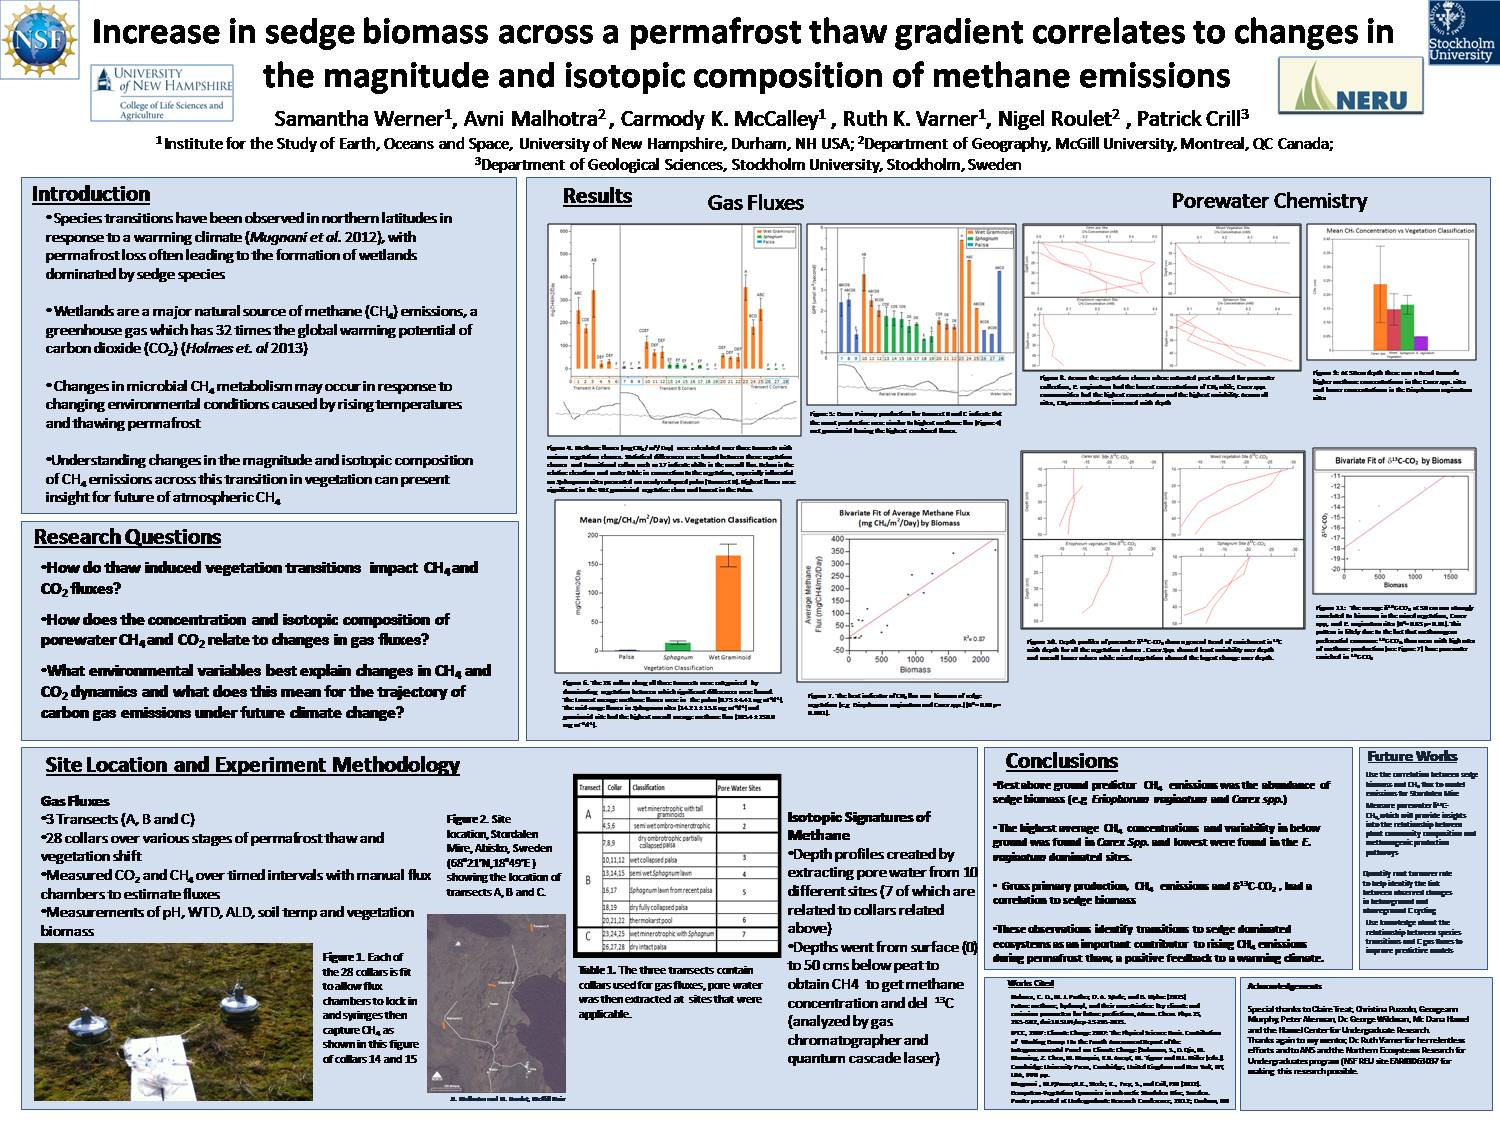 Increase In Sedge Biomass Across A Permafrost Thaw Gradient Correlates To Changes In  The Magnitude And Isotopic Composition Of Methane Emissions by Slq86